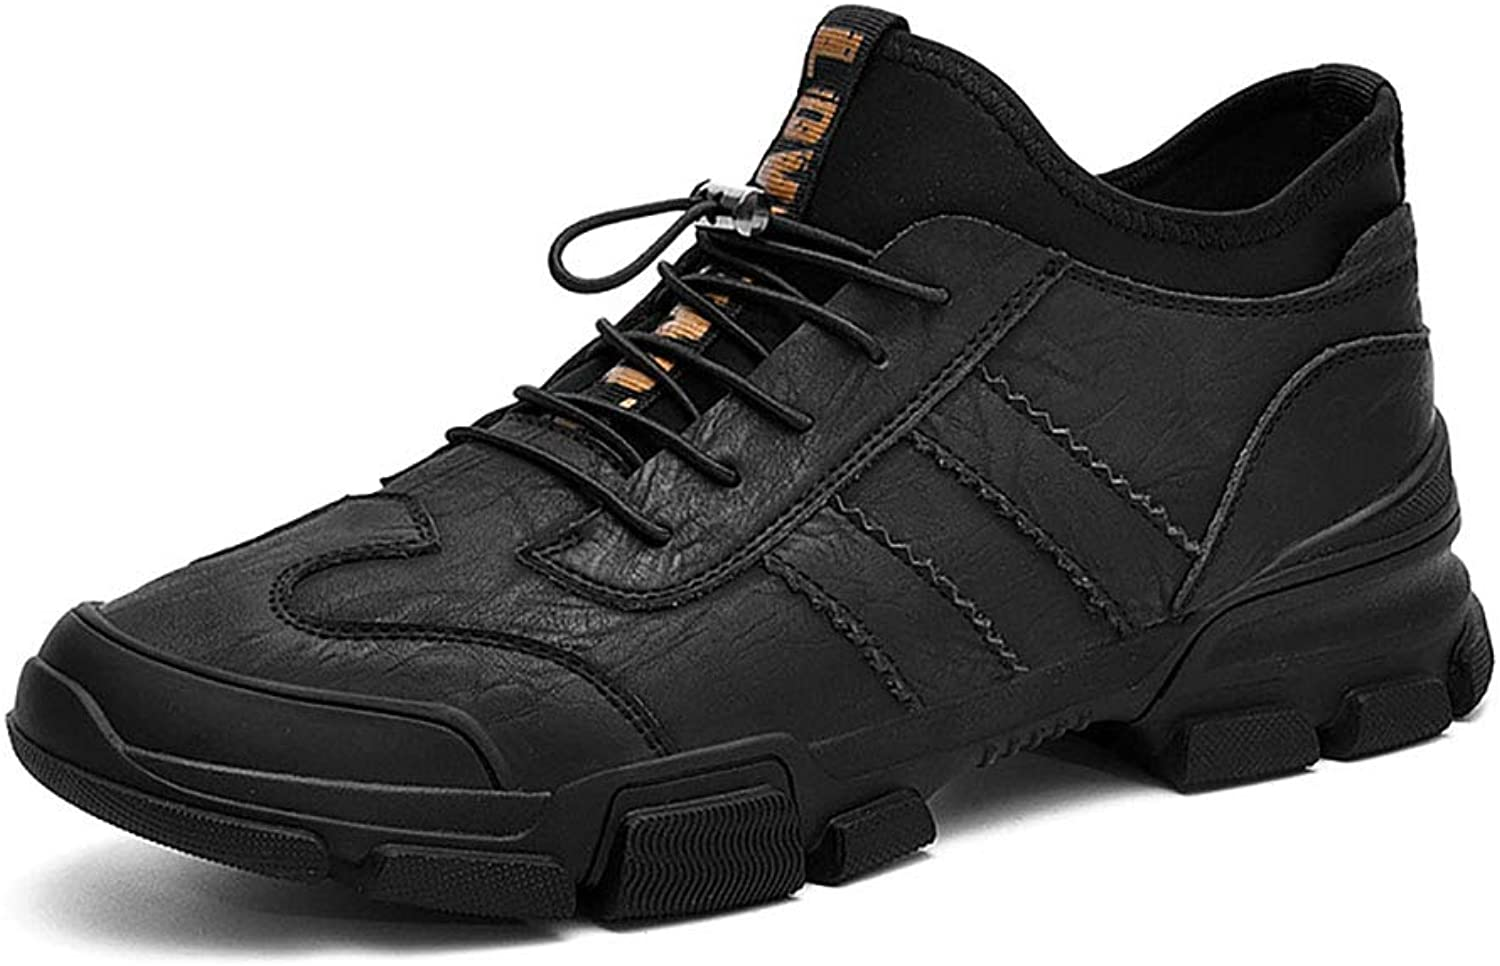 Men's shoes Spring Fall Sneakers Comfort Walking shoes Lace-Up Outdoor Sports Leisure shoes Black, Grey